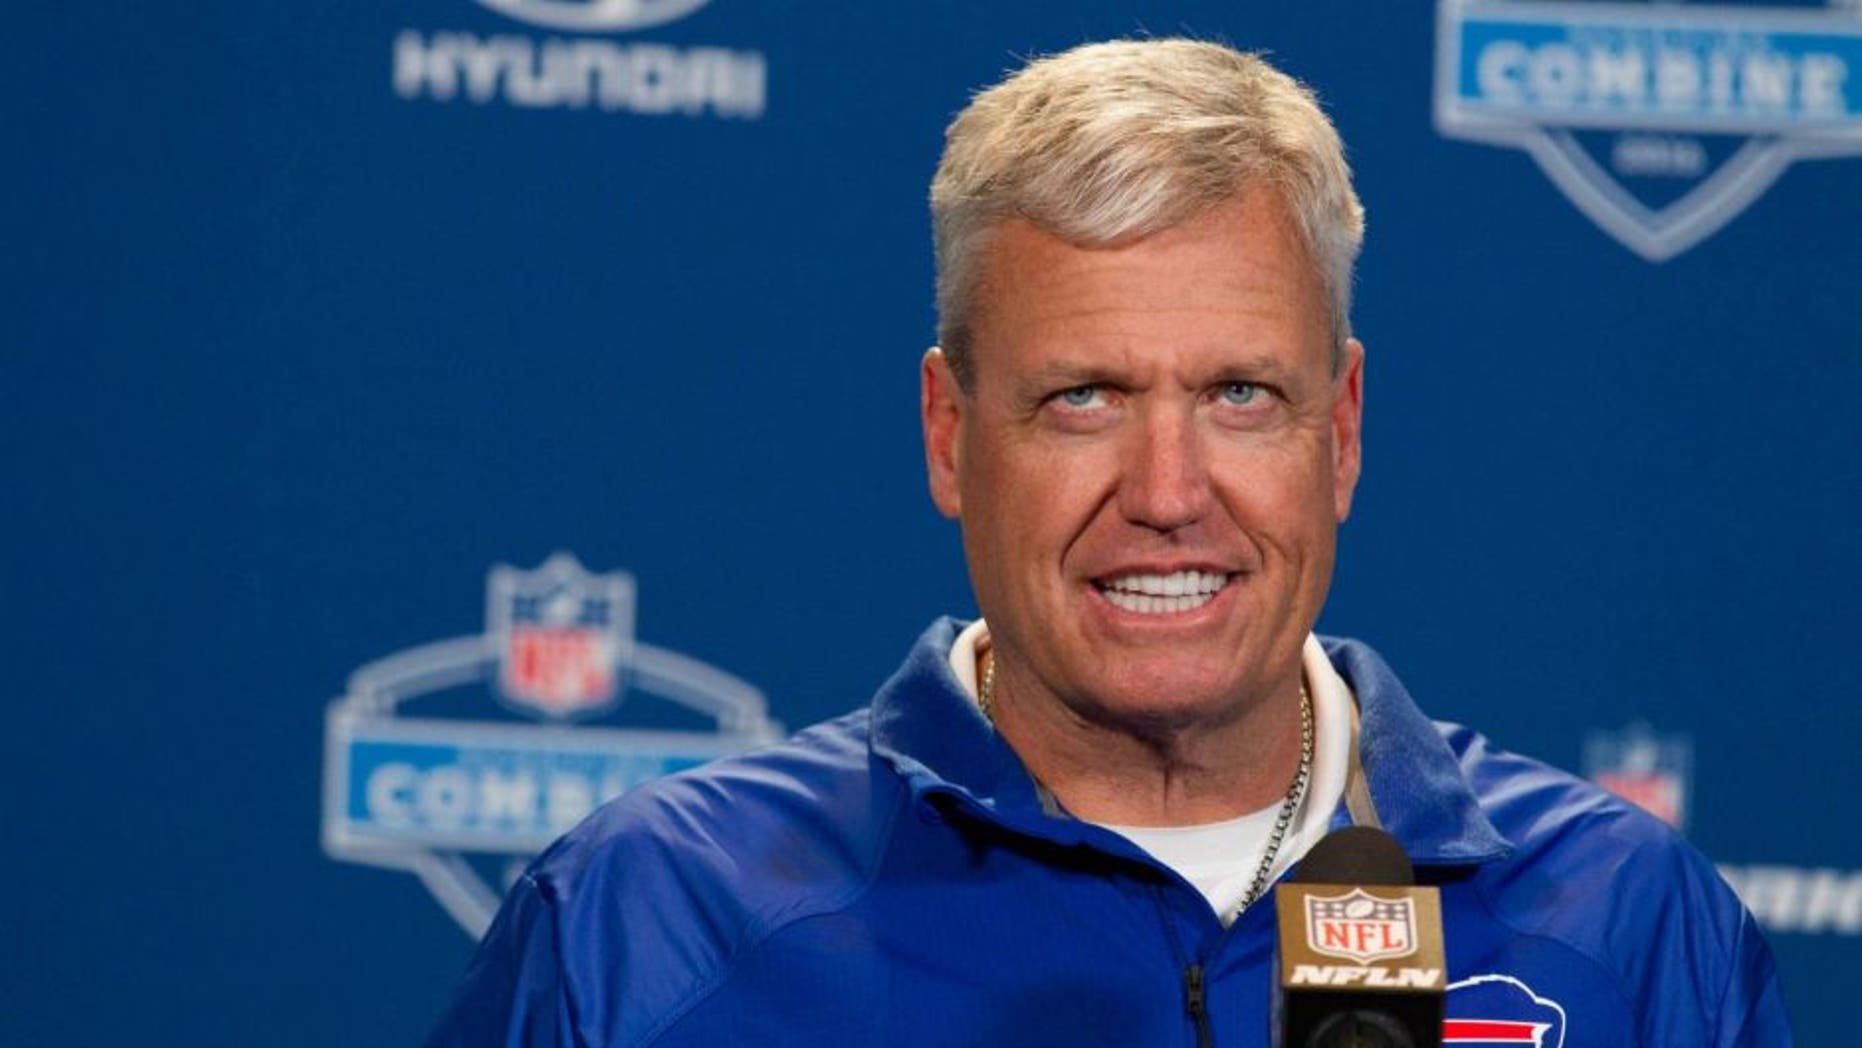 Feb 24, 2016; Indianapolis, IN, USA; Buffalo Bills head coach Rex Ryan speaks to the media during the 2016 NFL Scouting Combine at Lucas Oil Stadium. Mandatory Credit: Trevor Ruszkowski-USA TODAY Sports